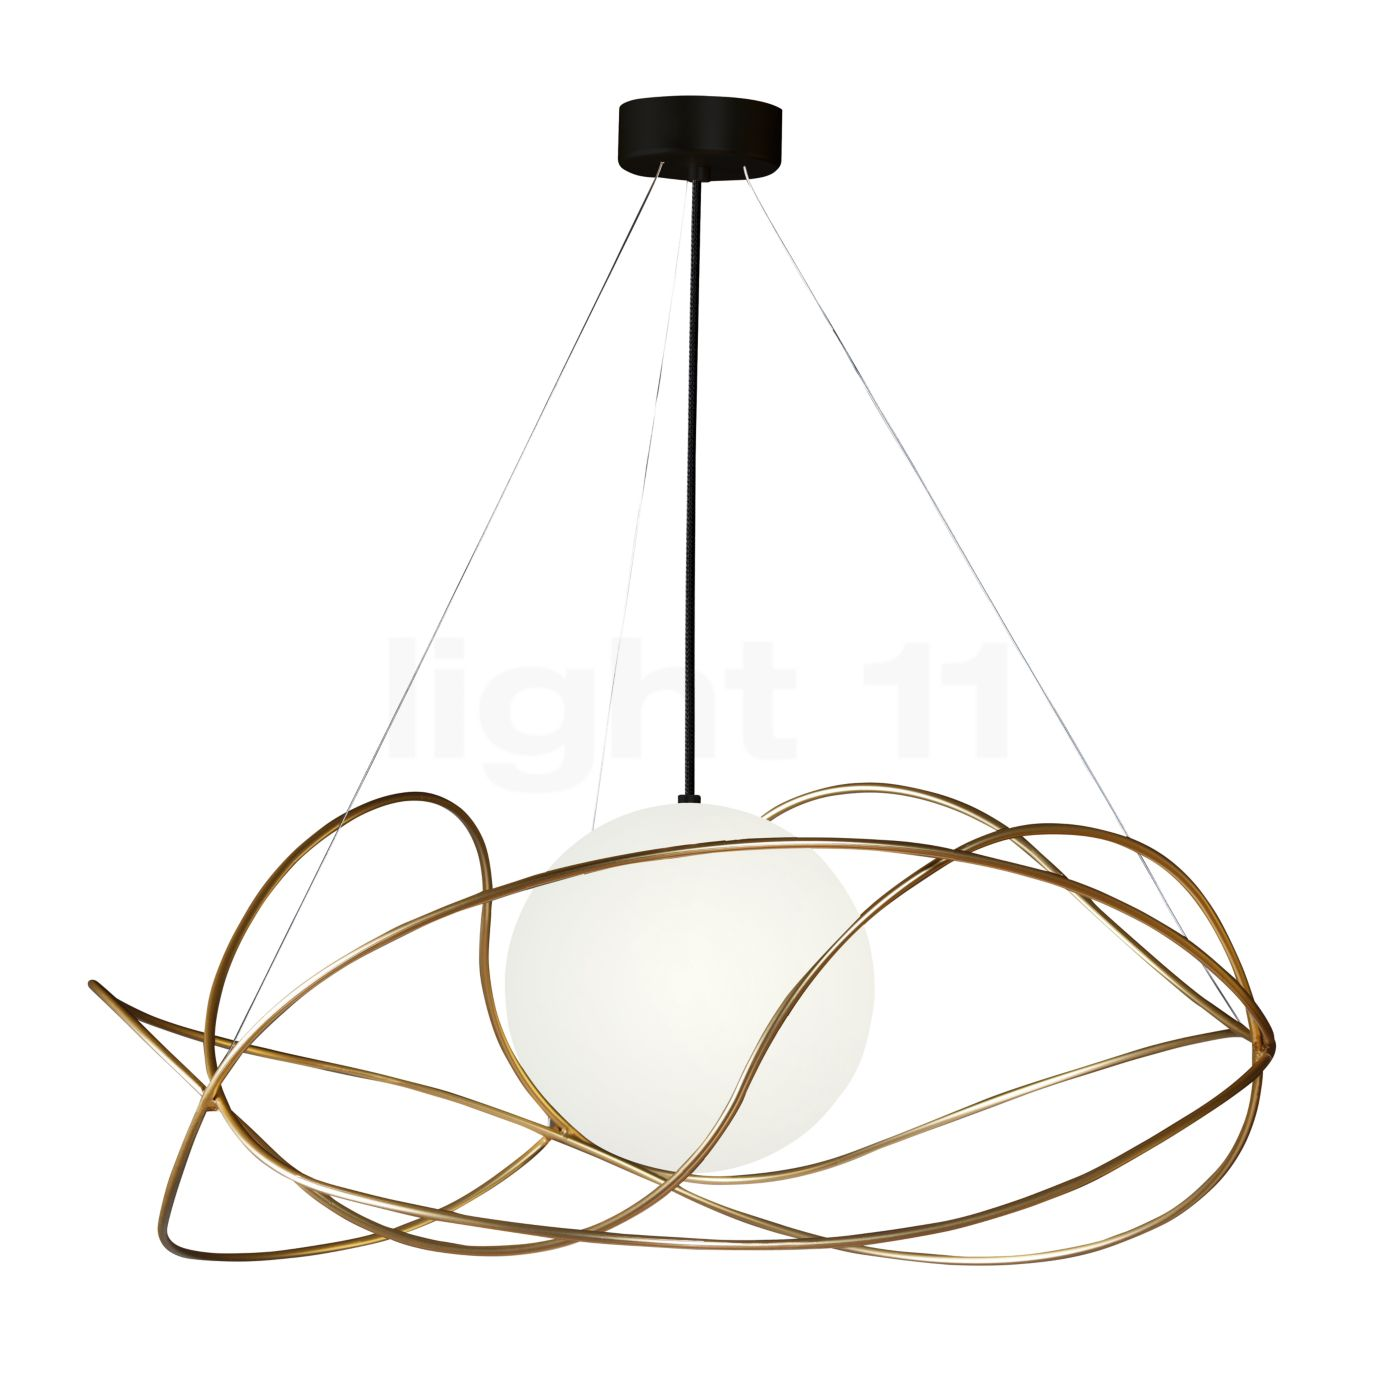 sc 1 st  Design lights u0026 designer l&s light11.eu & Buy Marchetti Garbuglio SV Pendant Light with Glass Diffuser at